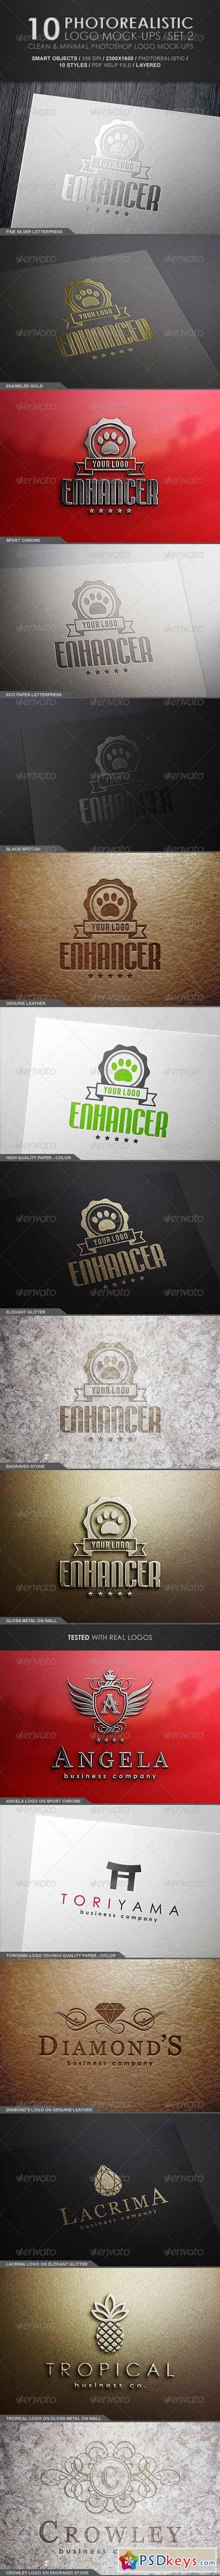 10 Photorealistic Logo Mock-Ups Set 2 4973414